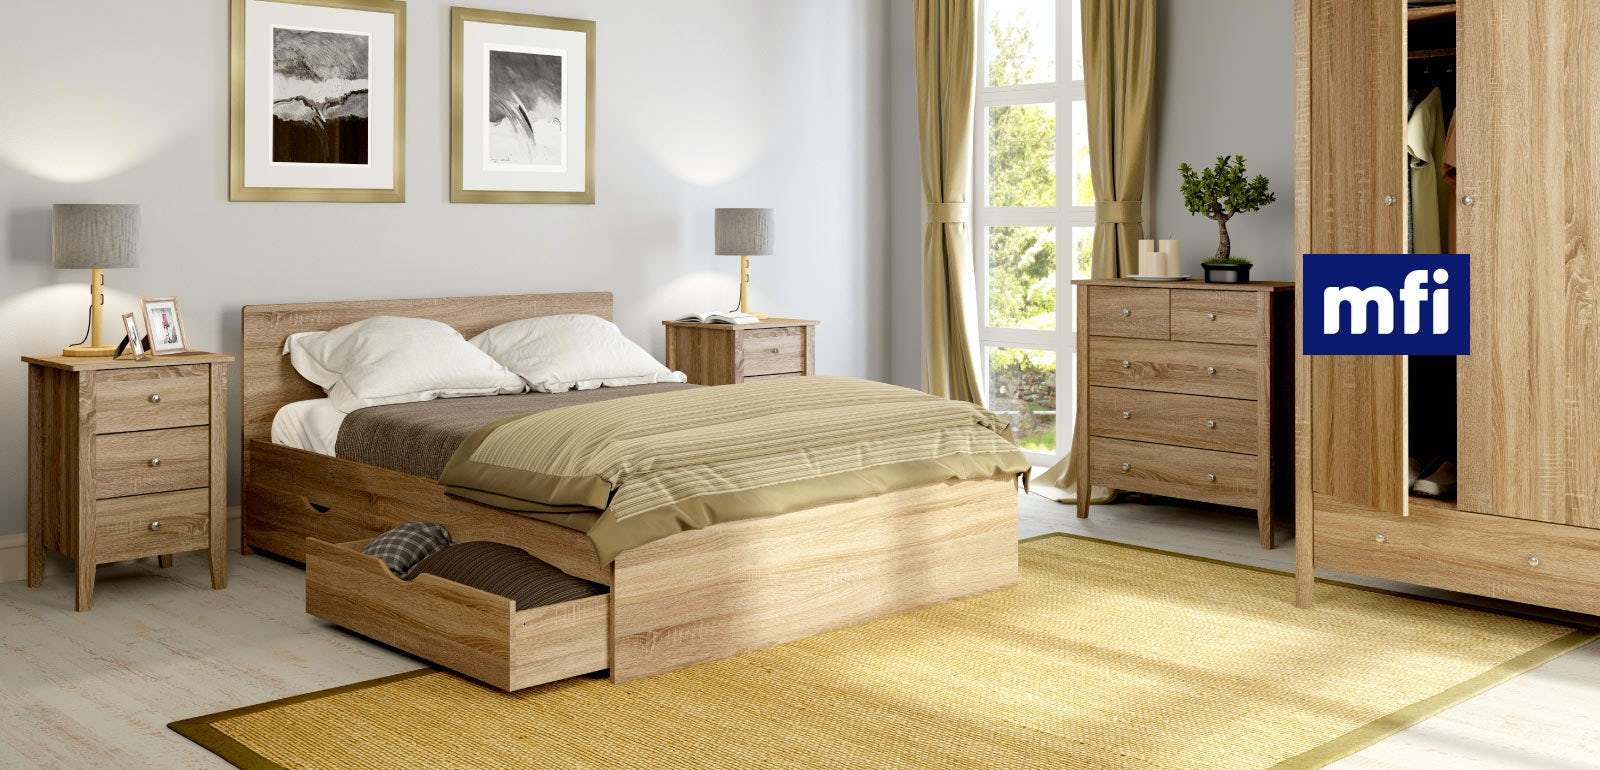 Bedroom with oak furniture